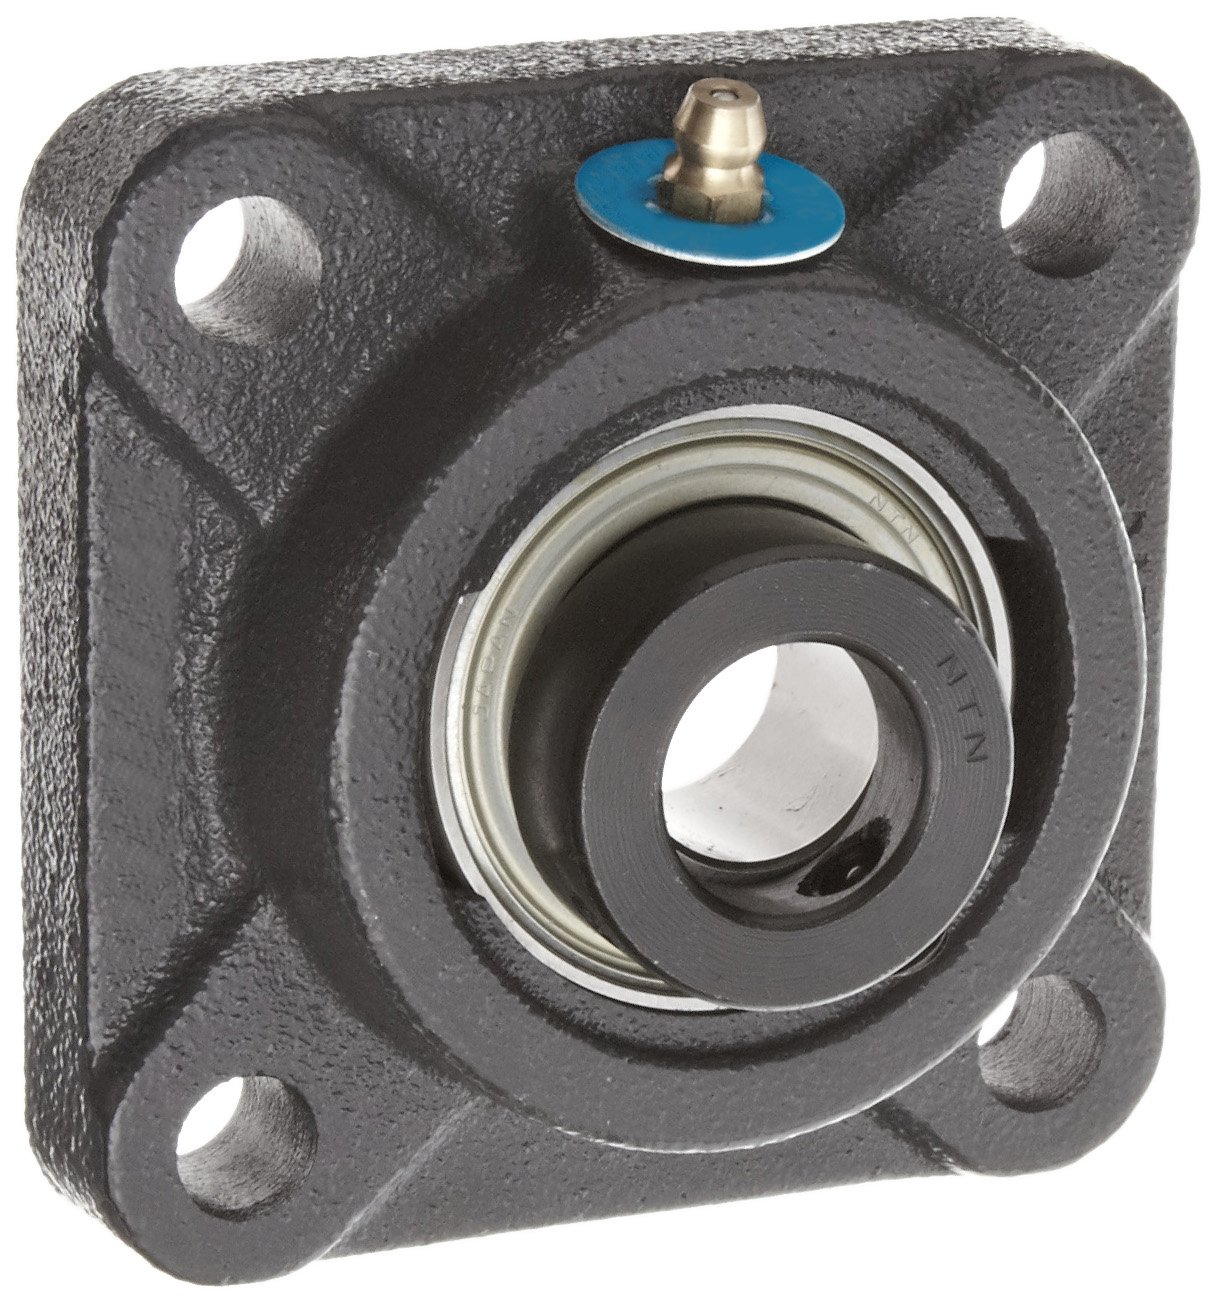 4-9//32 Height Contact Seals Eccentric Lock Regreasable 1-3//16 Bore 3-1//4 Bolt Hole Spacing Width Cast Iron NTN JELFU-1.3//16 Flange Bearing 4 Bolts Inch